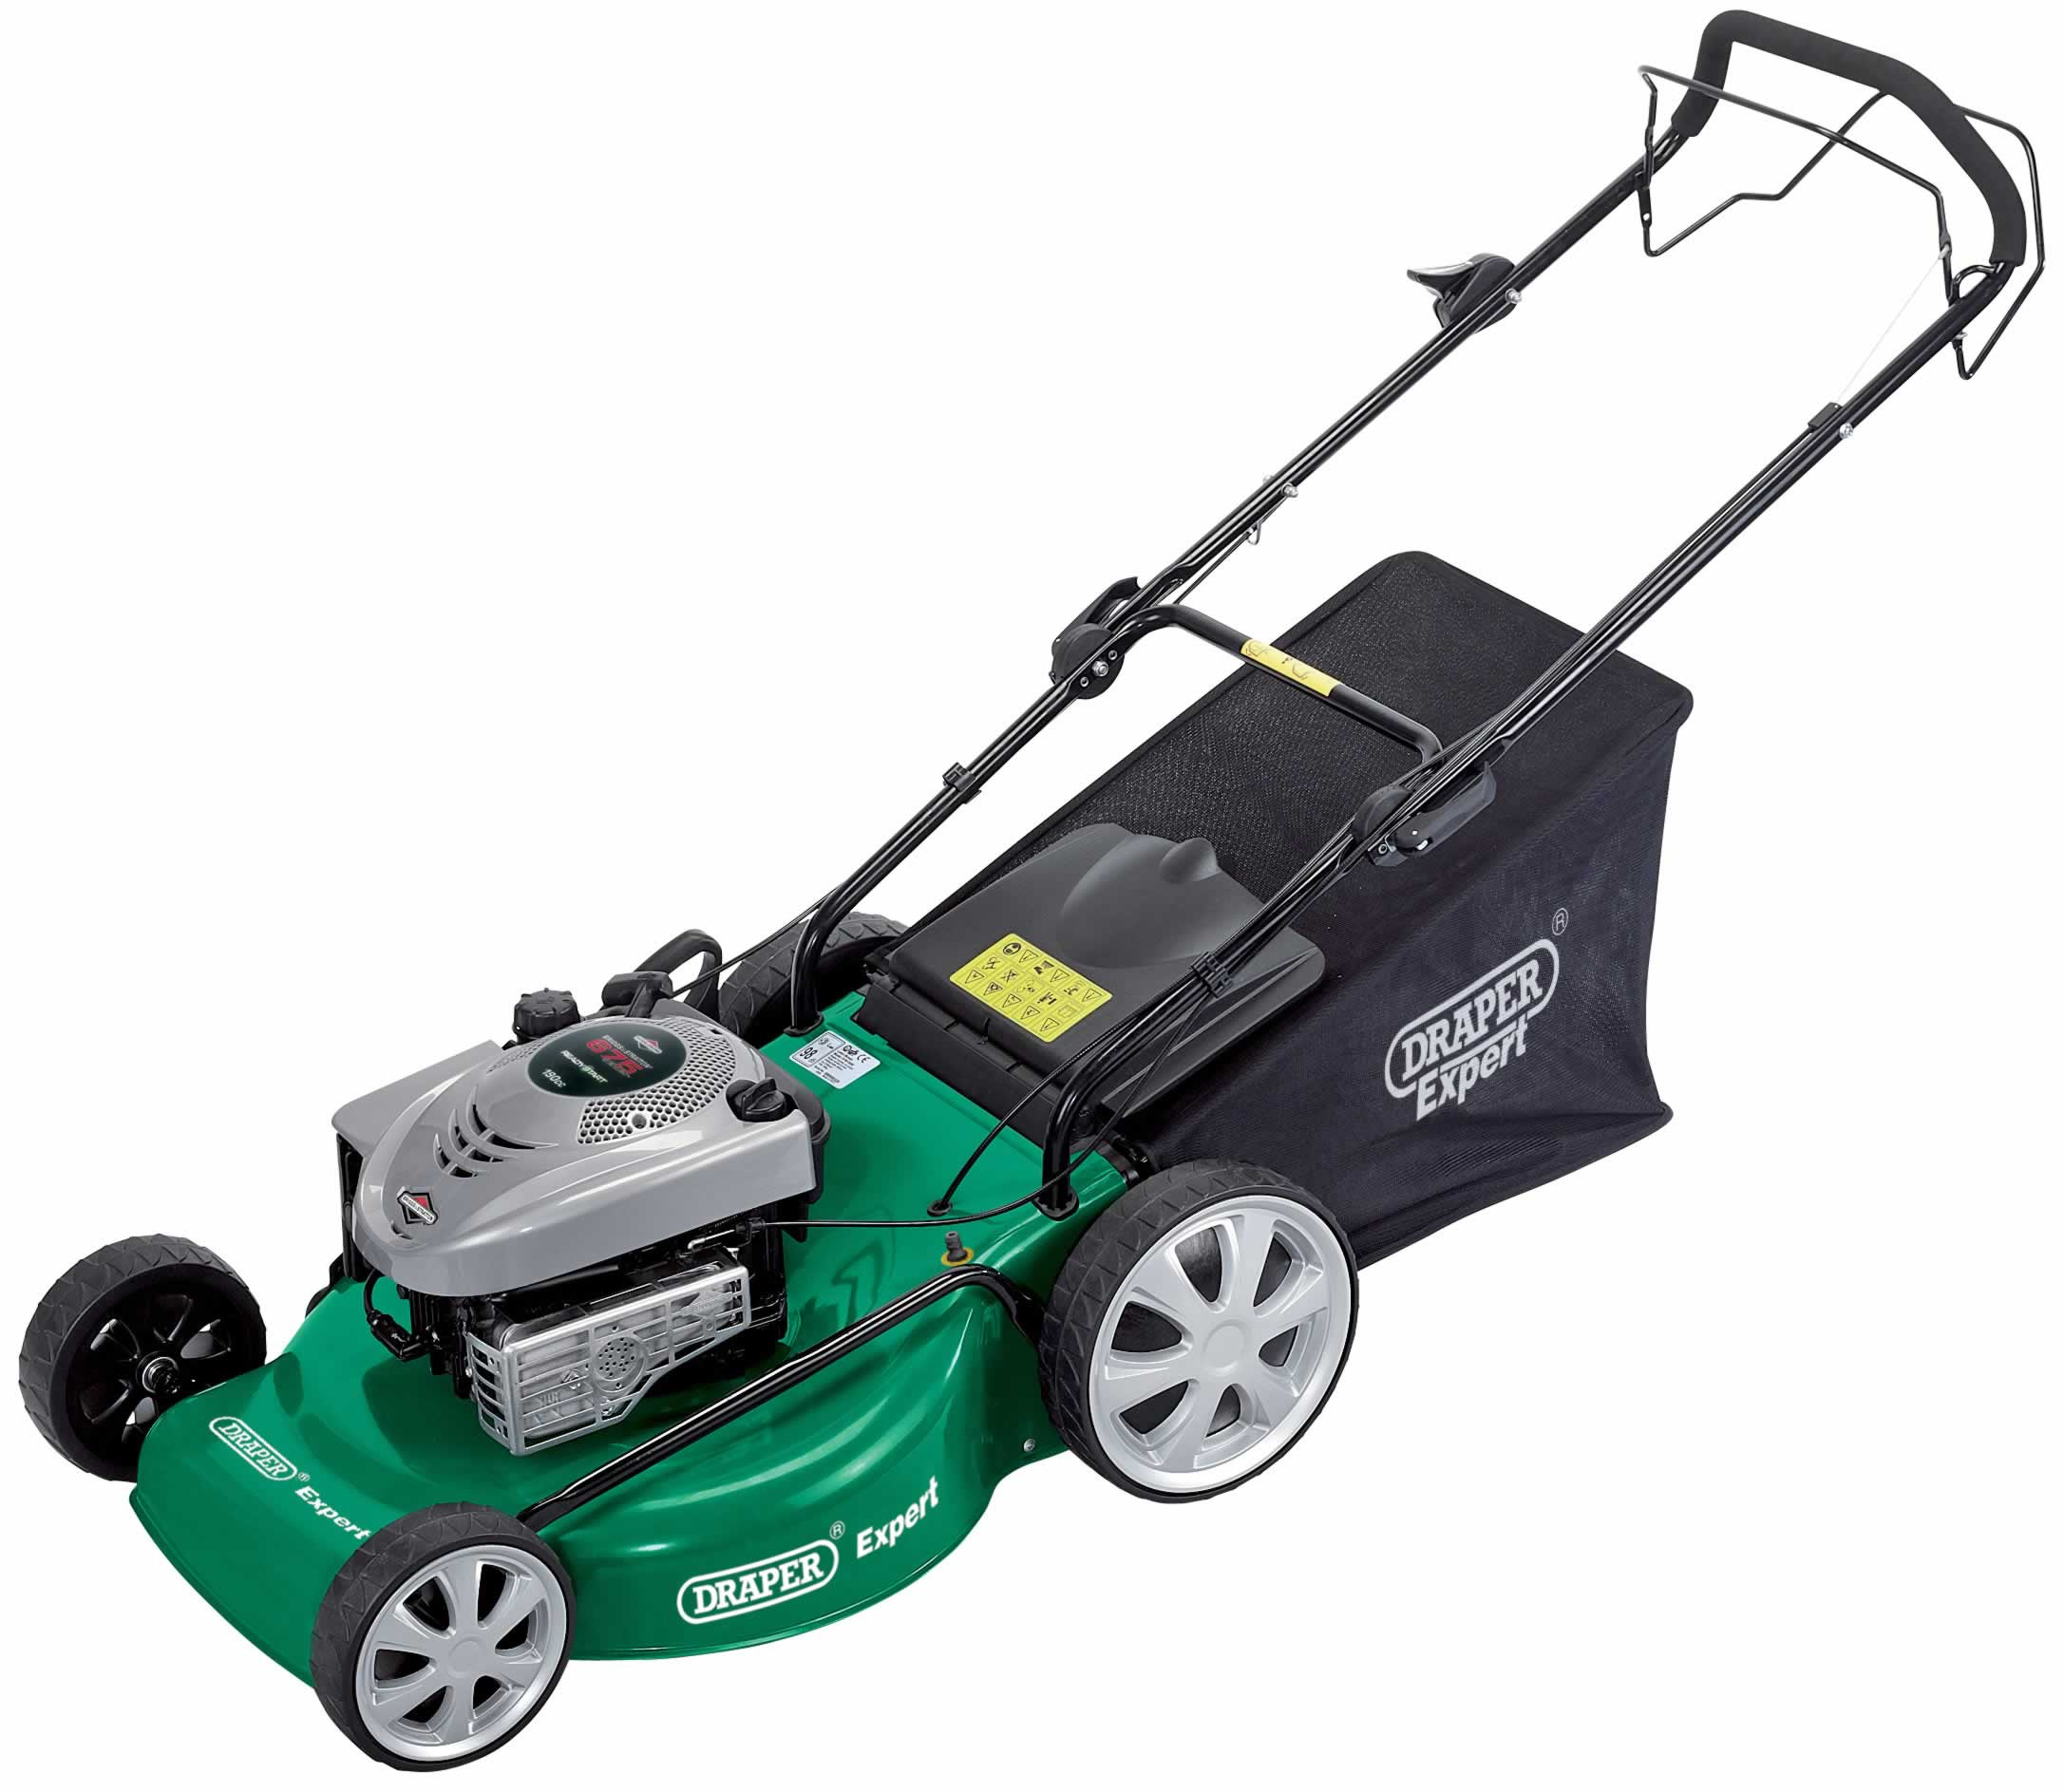 EXPERT 5.5HP 560MM SELF-PROPELLED PETROL MOWER WITH READYSTART® ENGINE